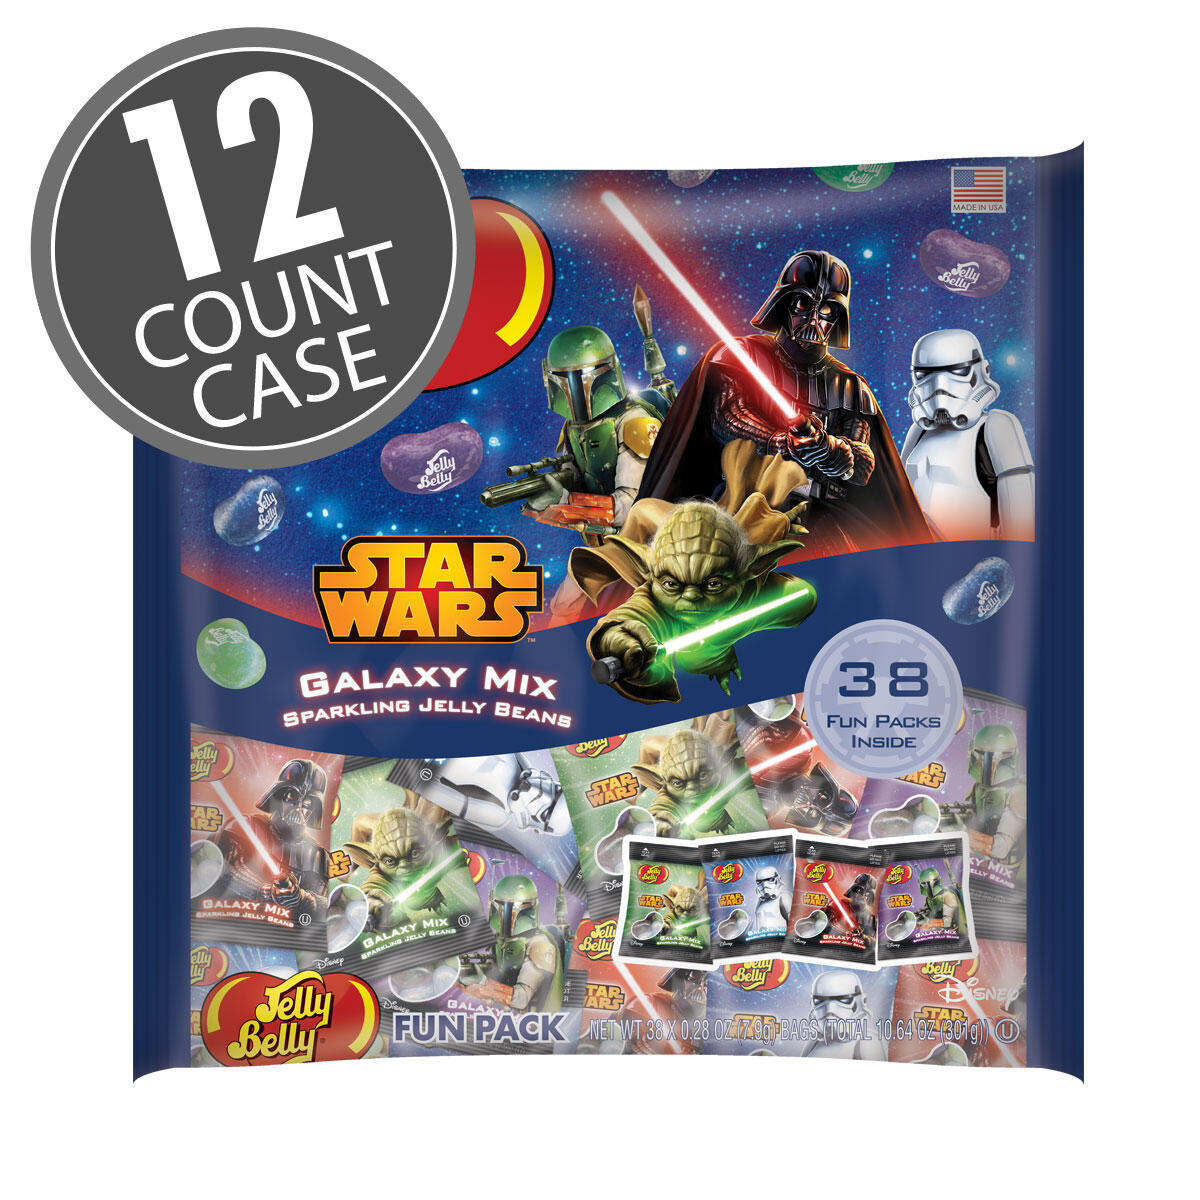 STAR WARS™ Jelly Beans Fun Pack - Galaxy Mix - 12 Count Case